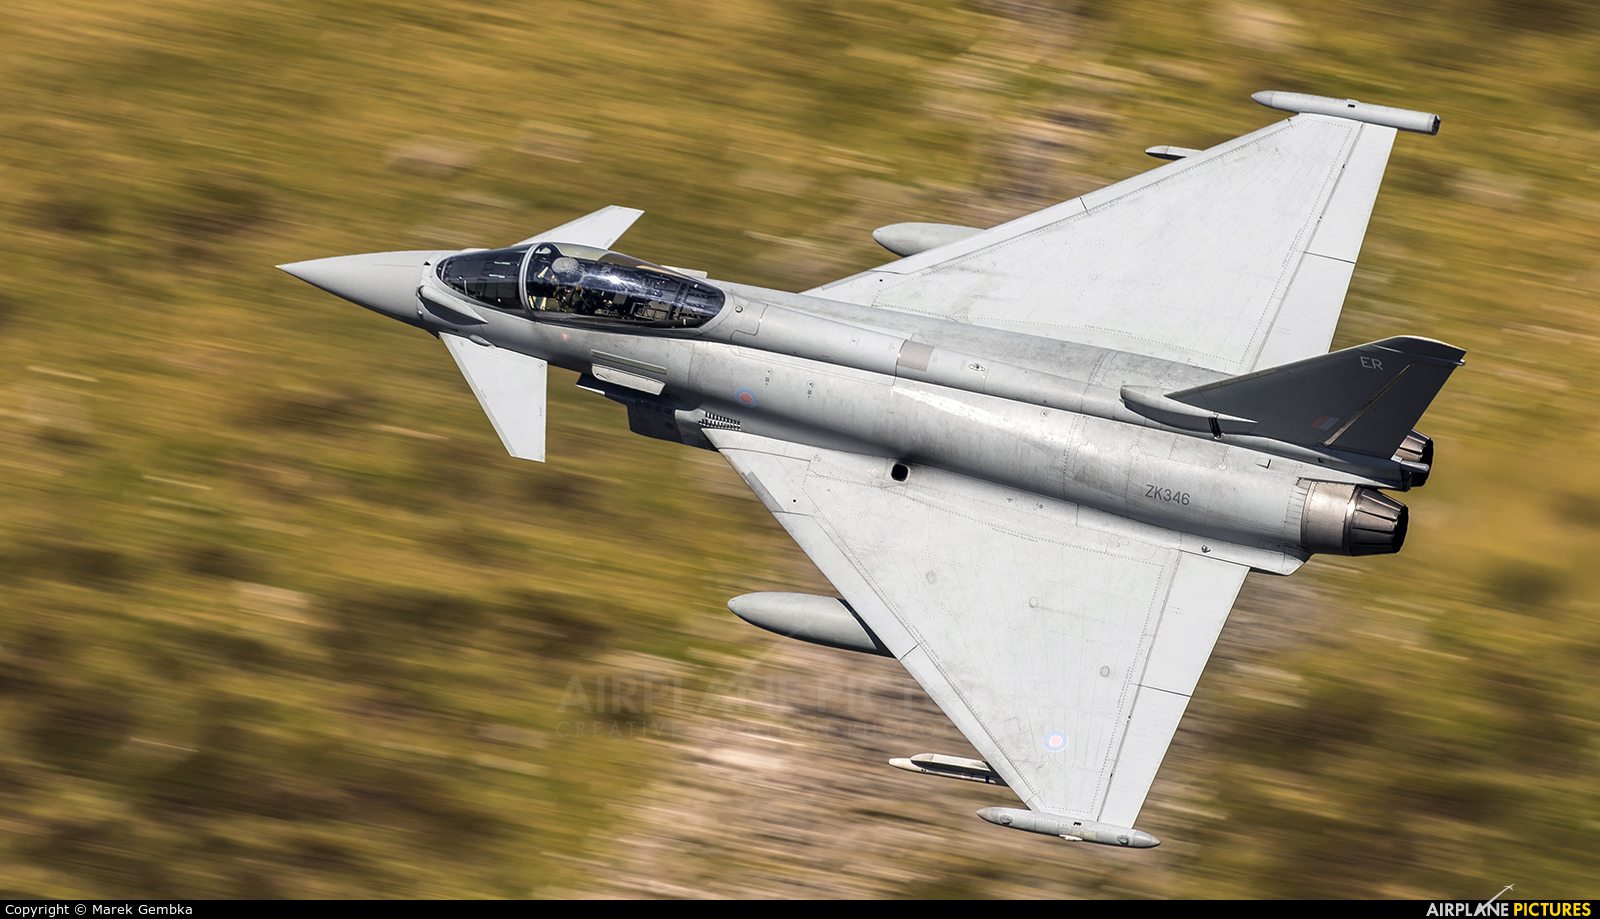 Royal Air Force ZK346 aircraft at Machynlleth Loop - LFA 7